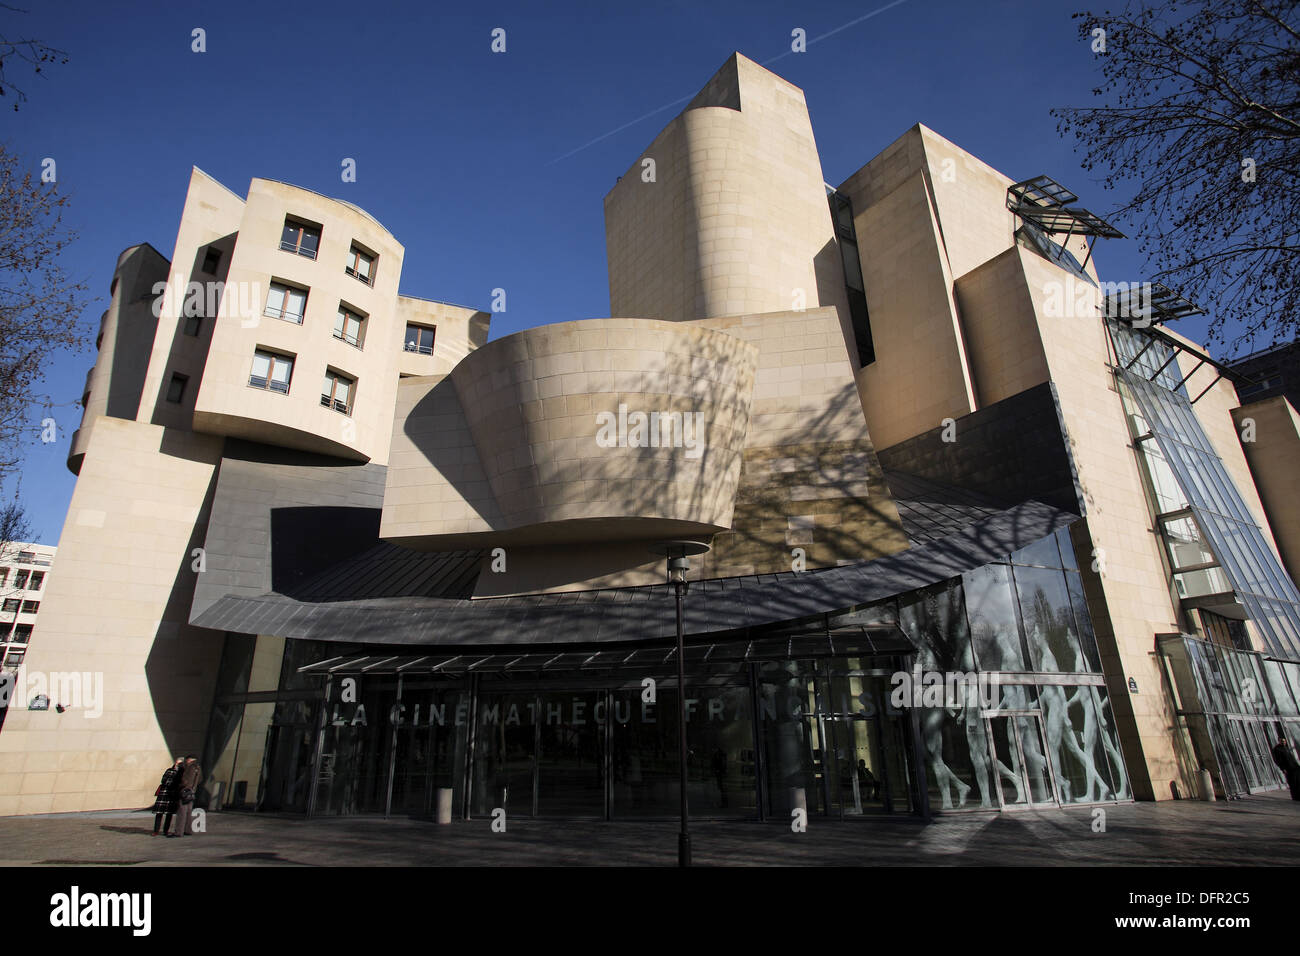 La Cinematheque Francaise housed in a building designed by Frank Gehry in Parc Bercy. Paris. France - Stock Image